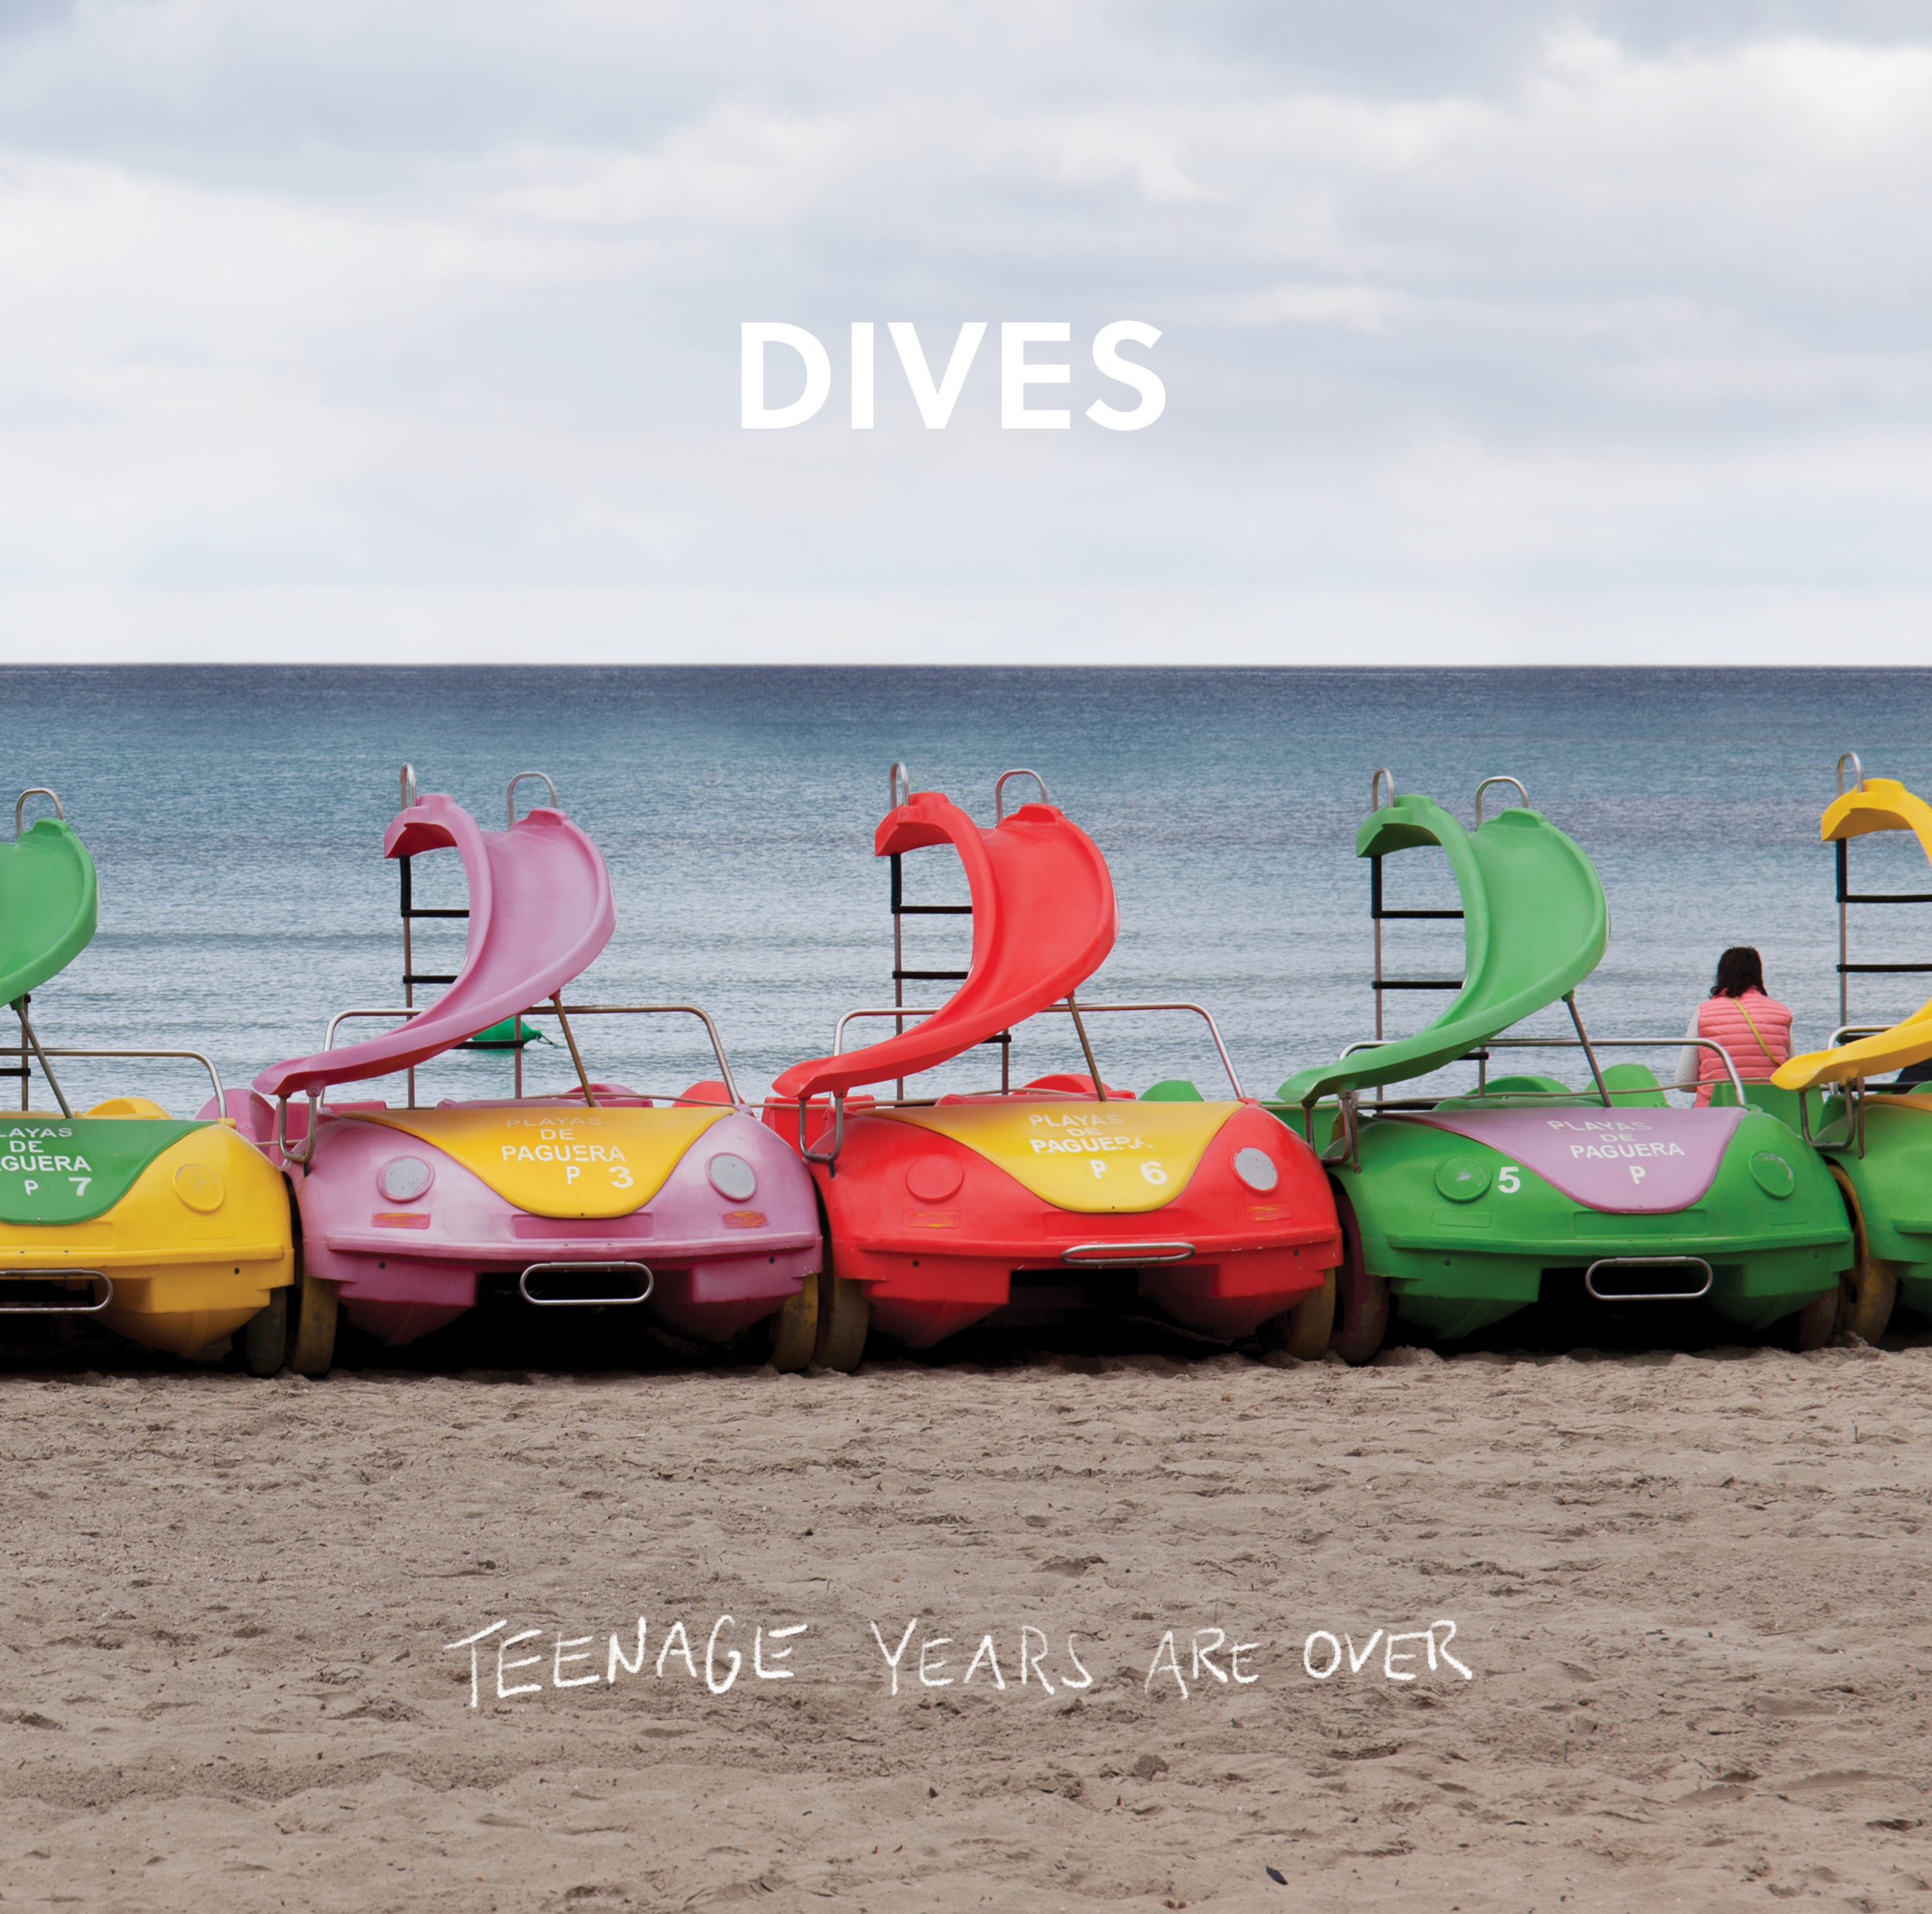 DIVES - Teenage Years are Over